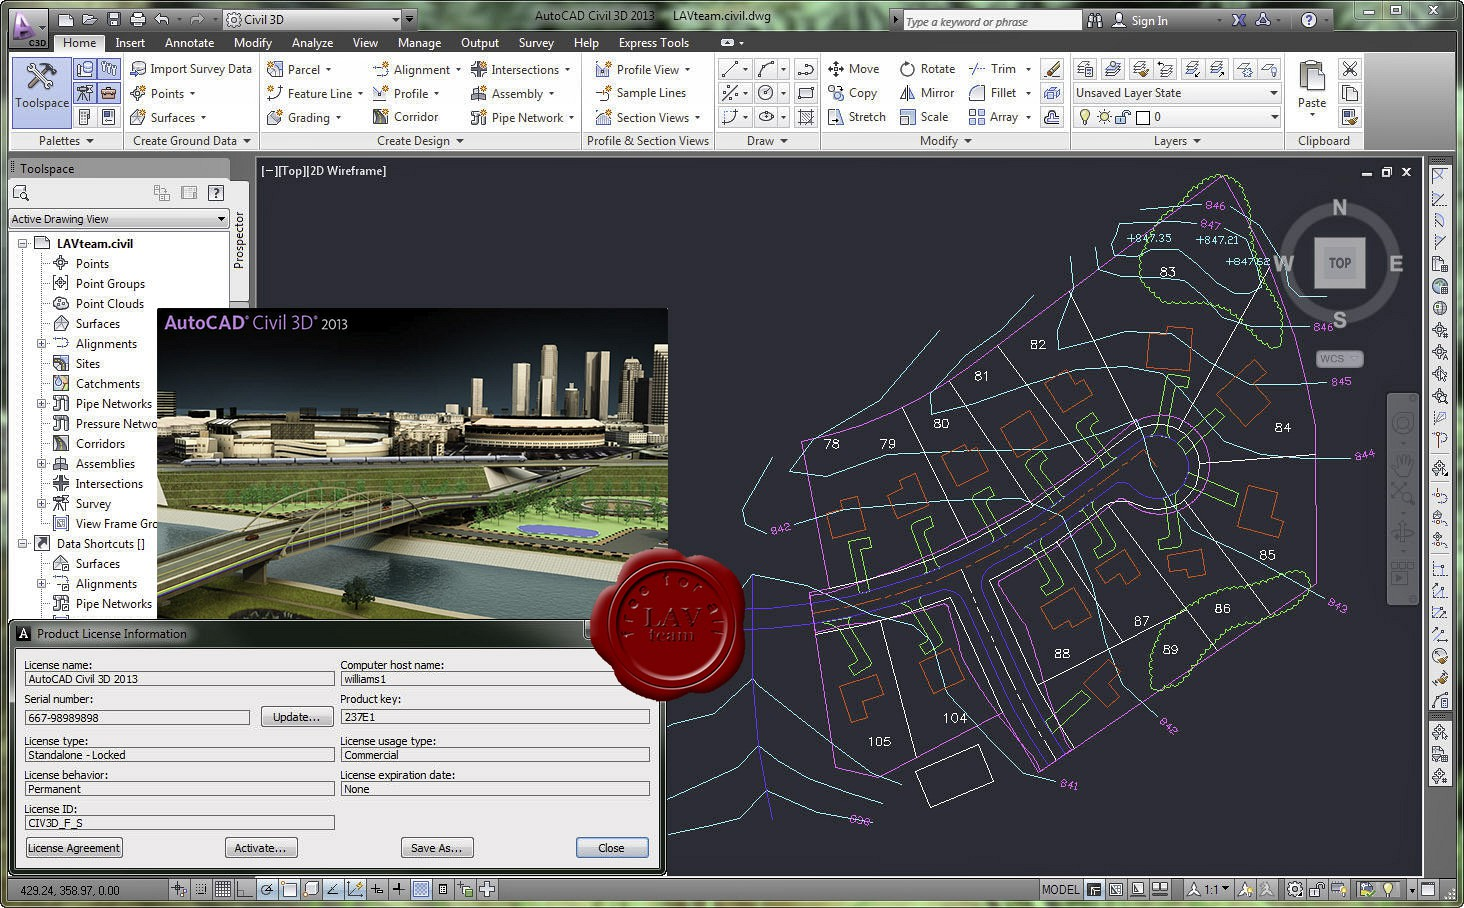 Buy autocad civil 3d 2018 online usa save up to 70% | autocad.